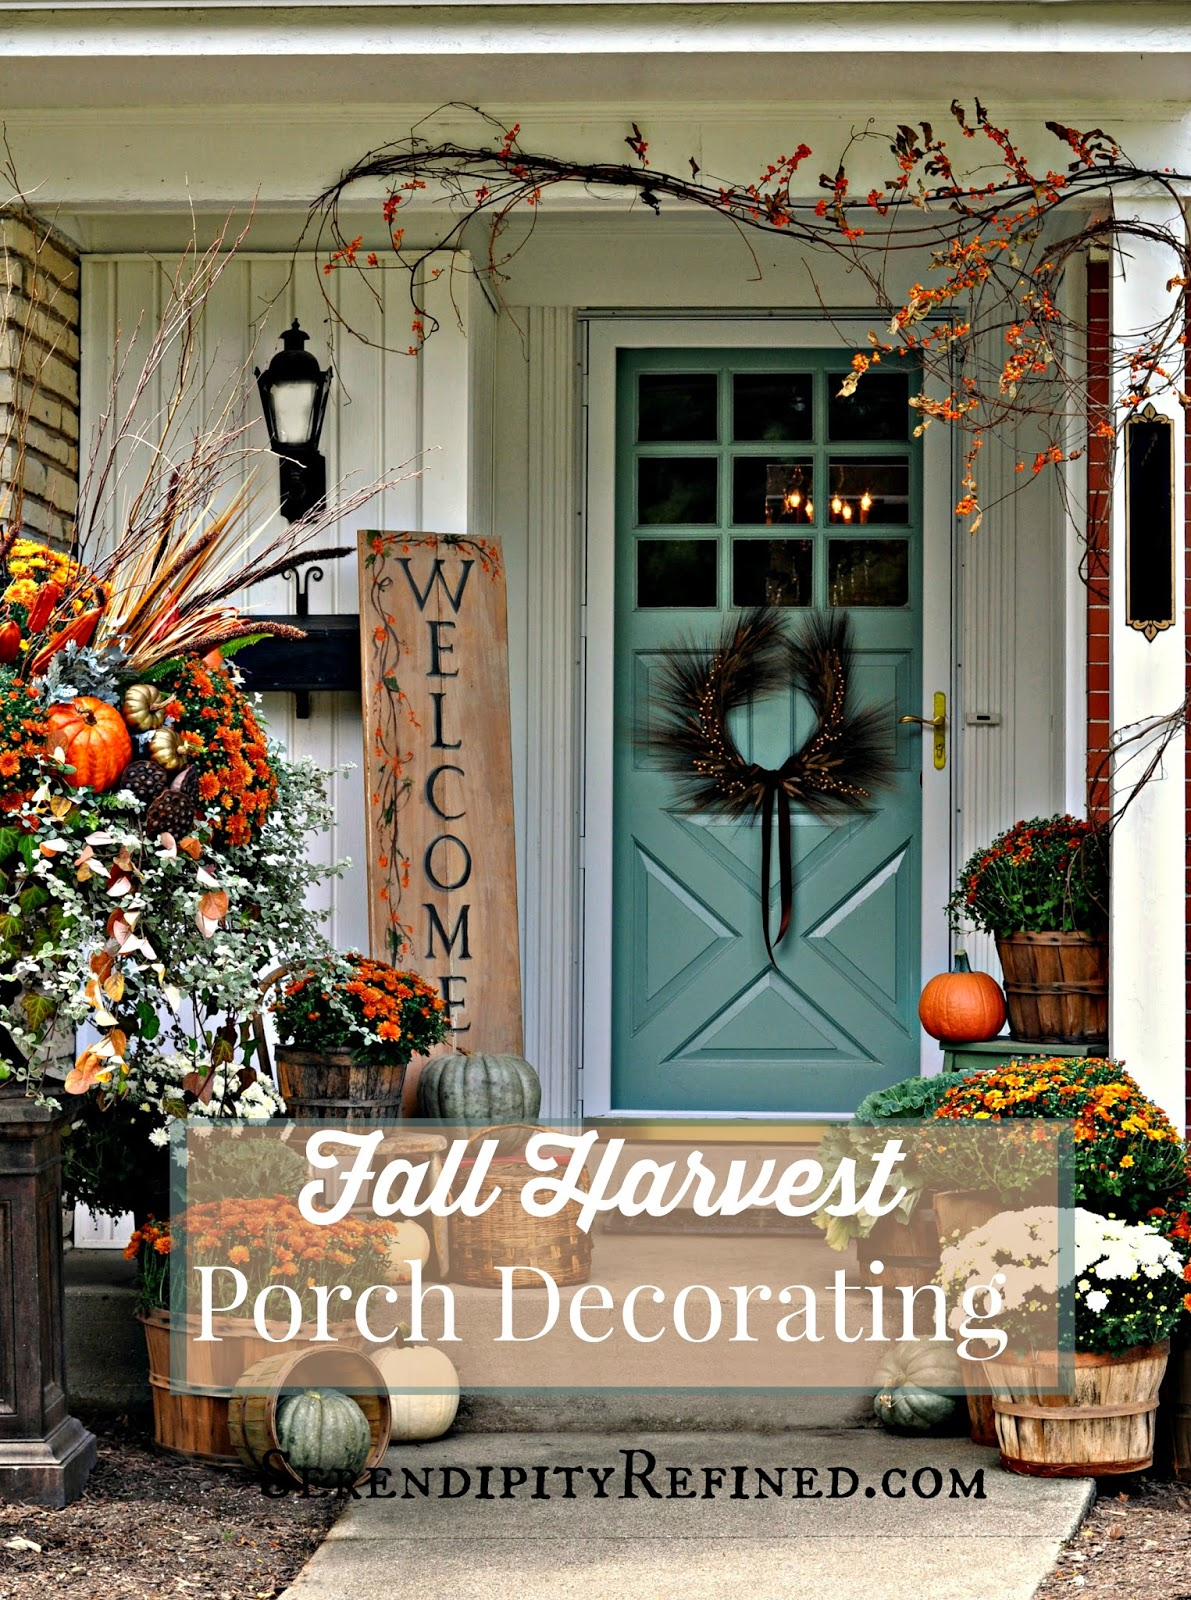 In The Middle Of Renovation Im Still Decorating For Fall Fact All Is Full Swing Here At Farmhouse Porch Dressed With